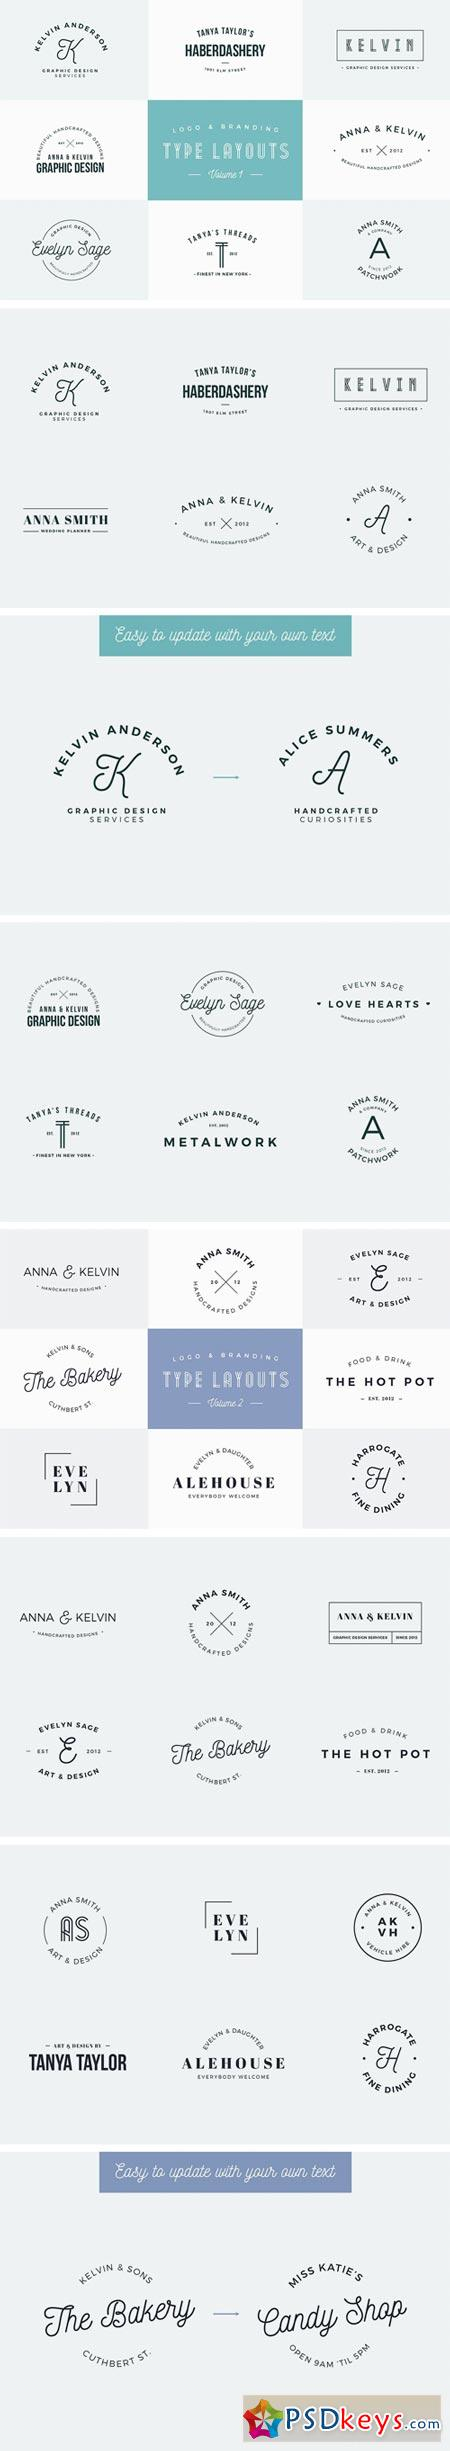 Type » page 4 » Free Download Photoshop Vector Stock image